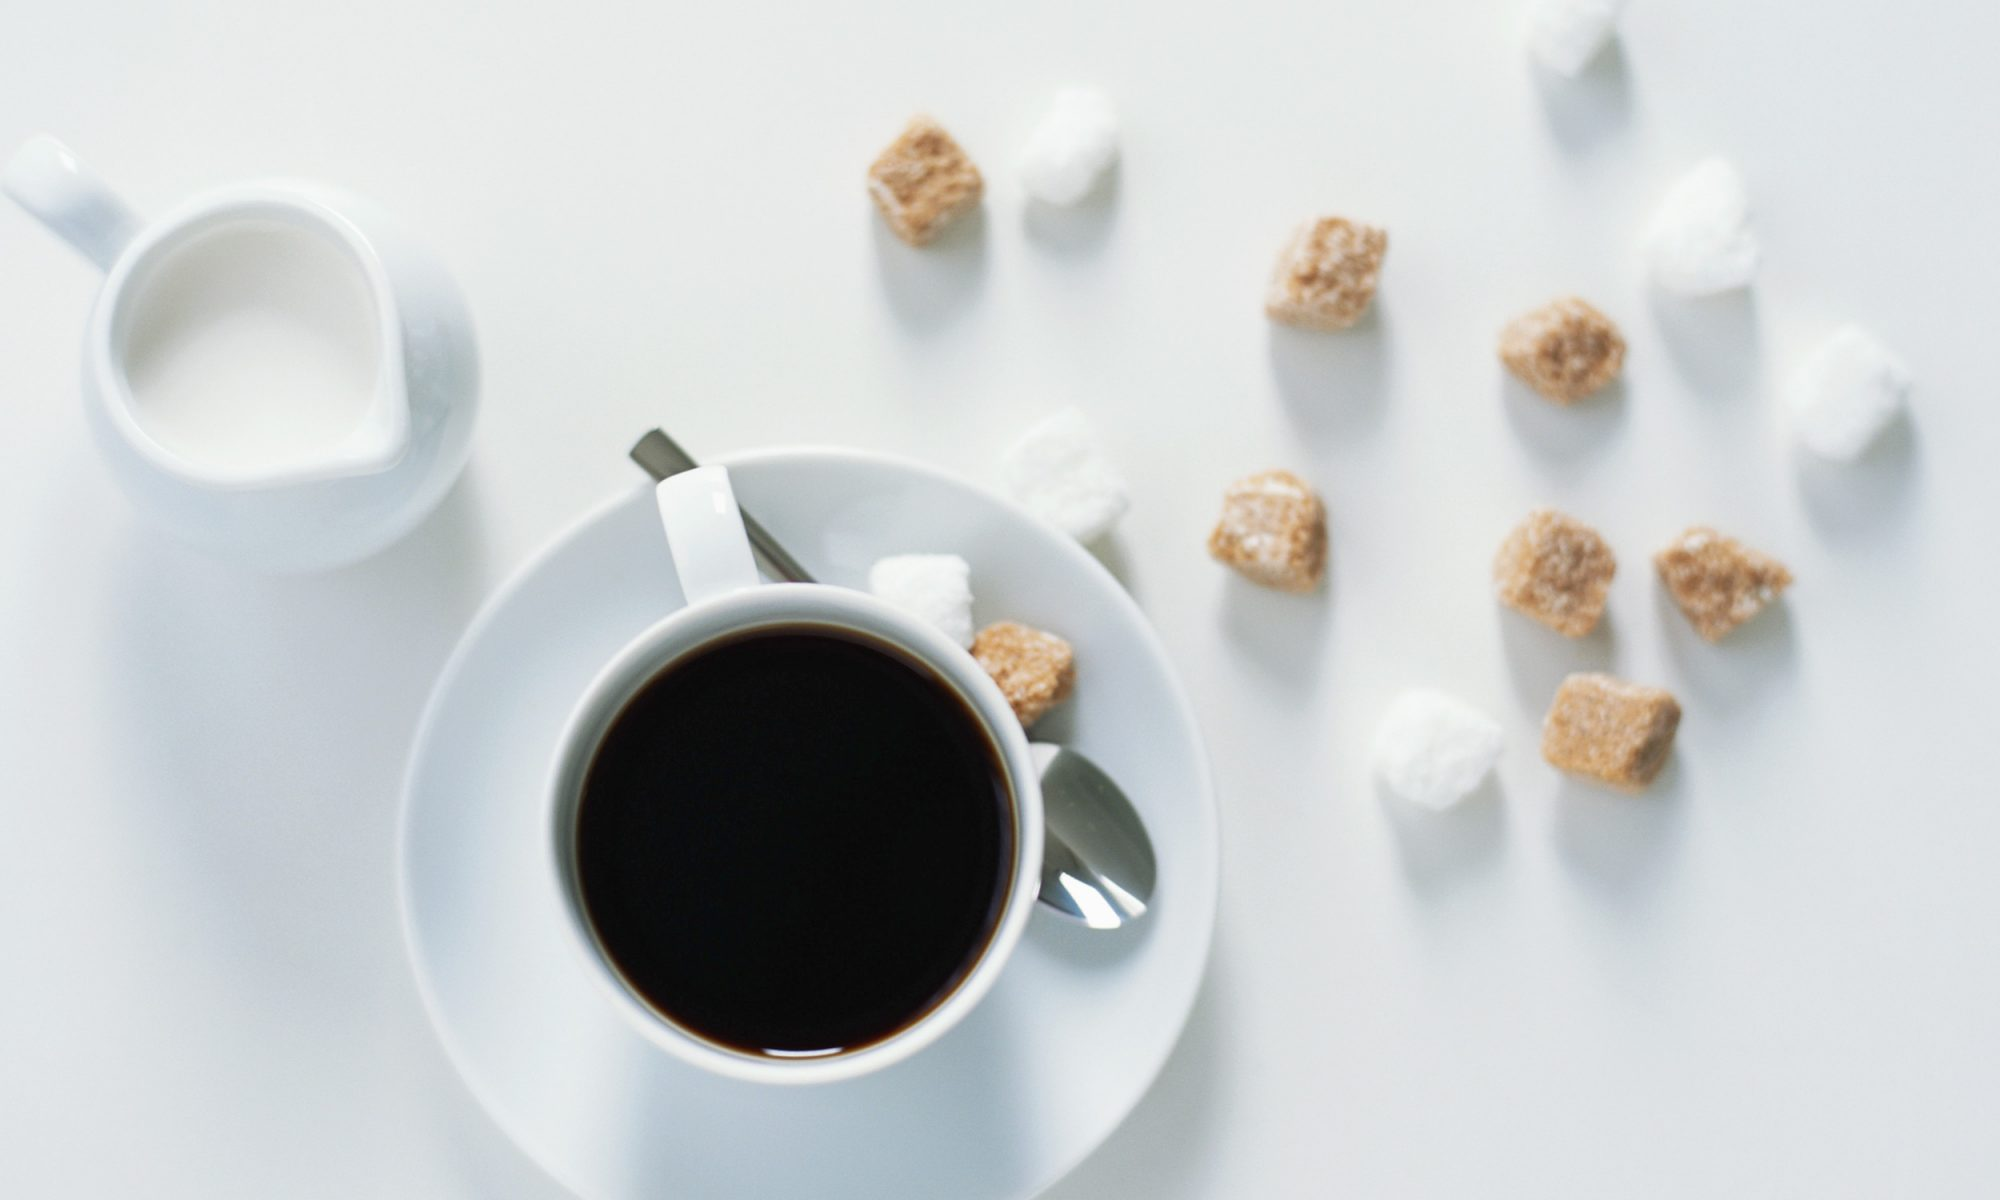 EC: Why You Should Pay for Milk or Sugar in Your Coffee